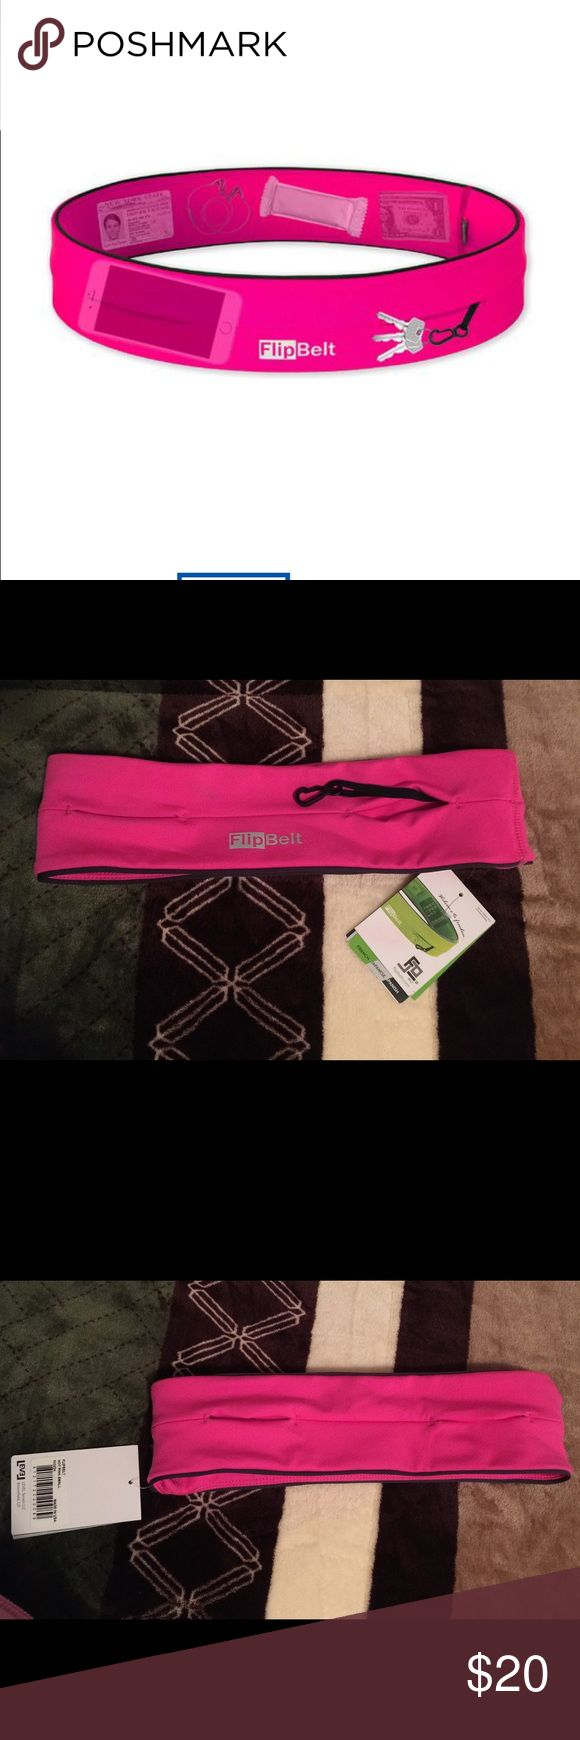 Flip Belt Sz Small, New with tags, hot pink. Exercise storage belt level Pants